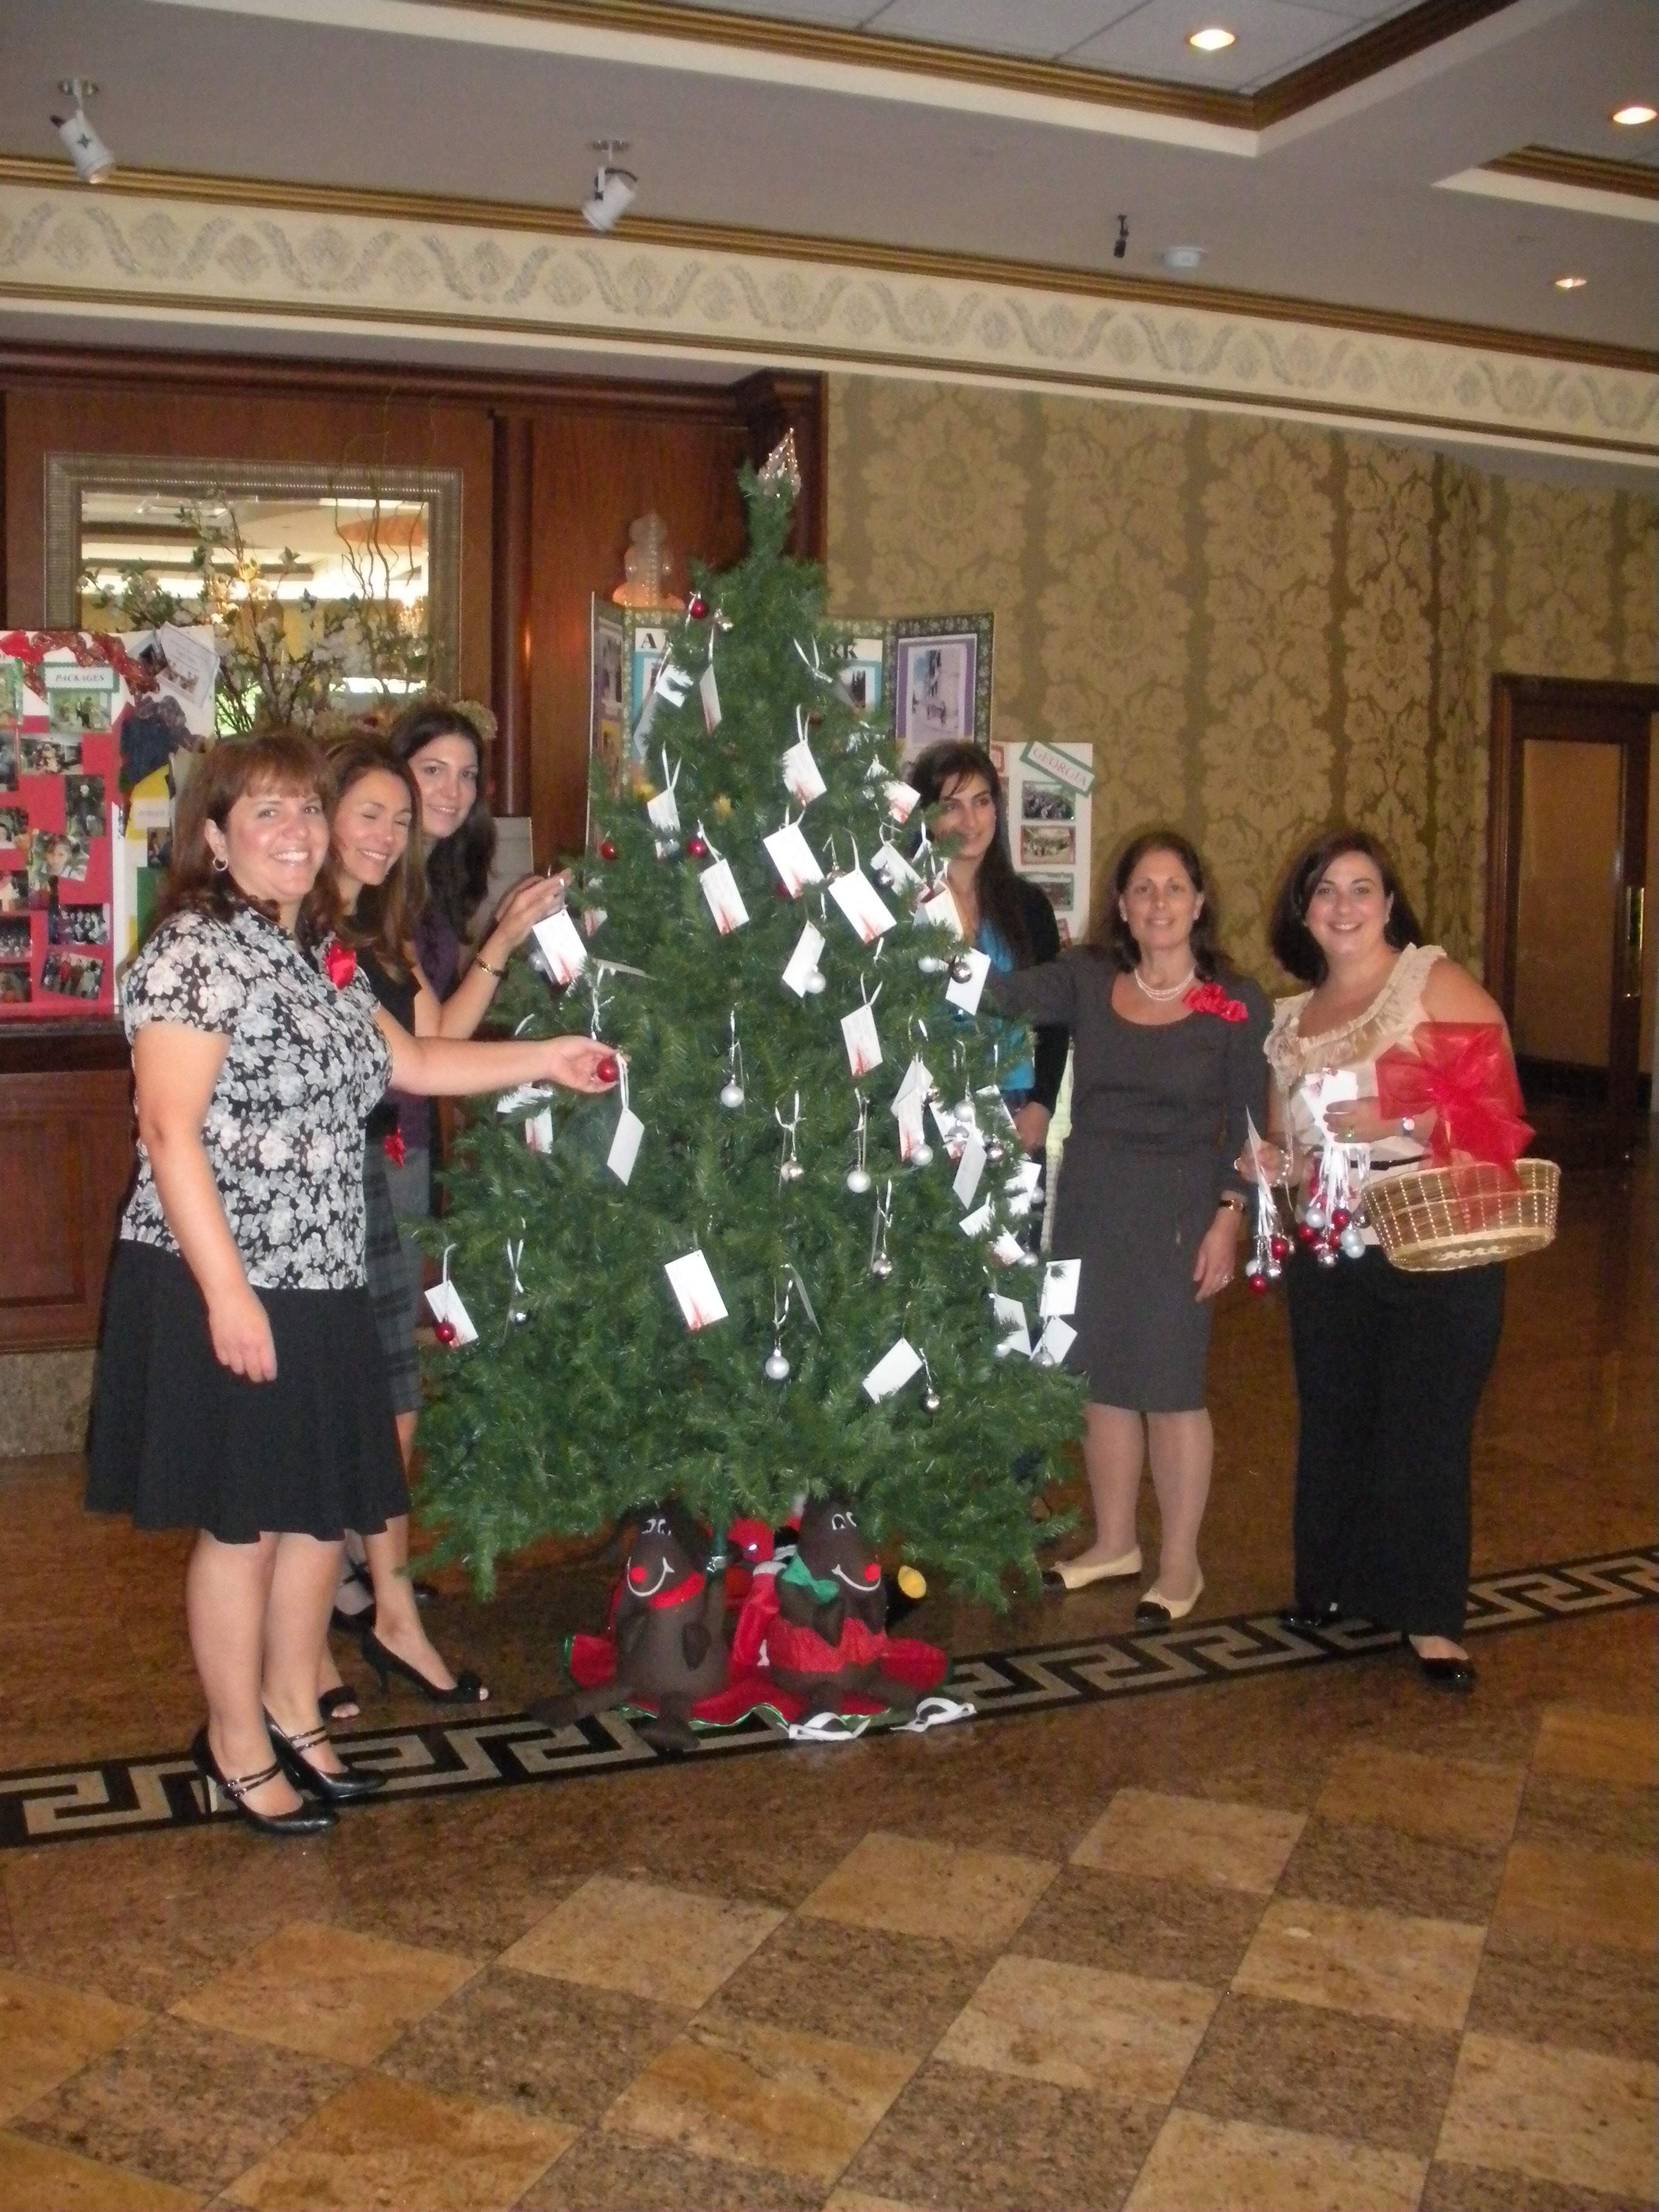 Decorating the Christmas Tree with Donation Card Ornaments ...